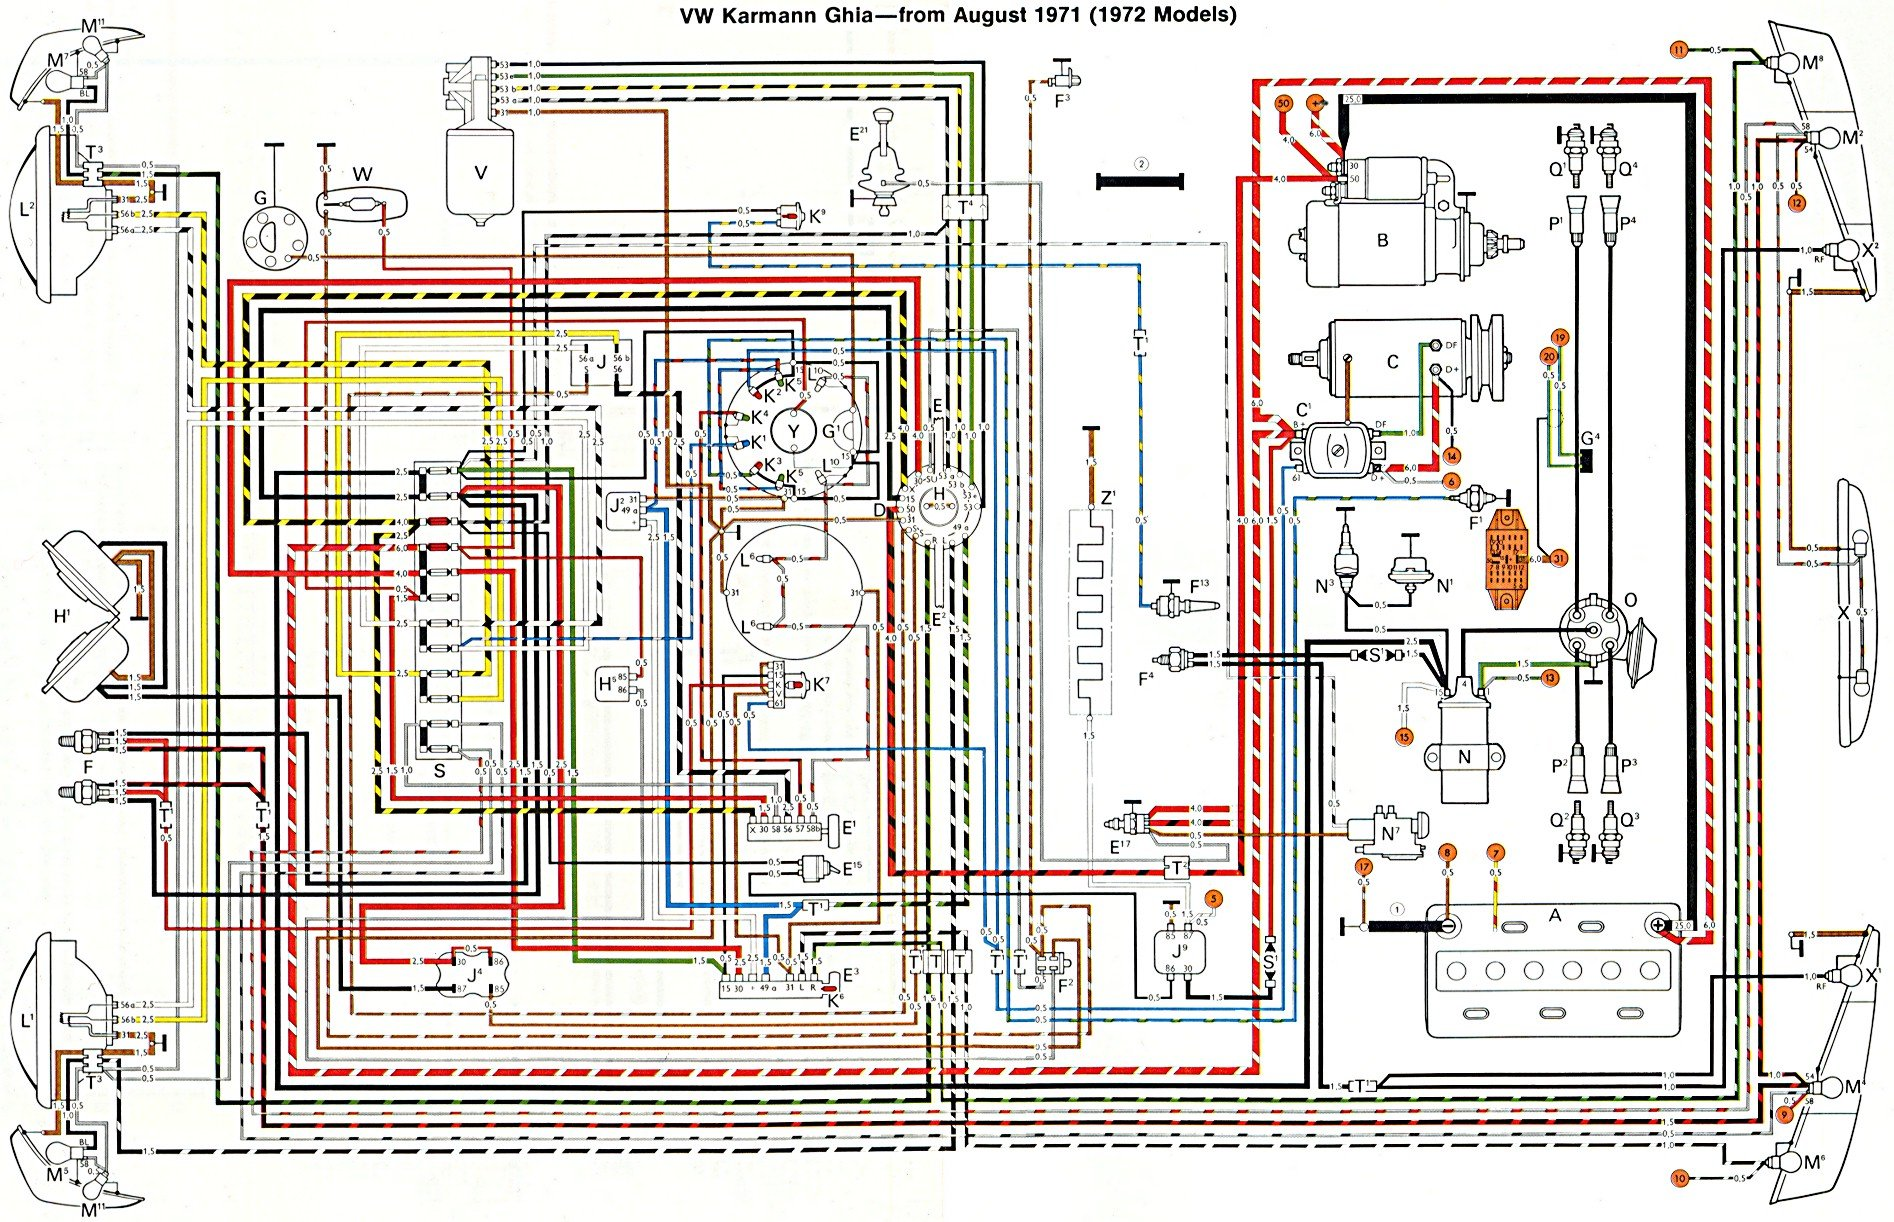 72ghia 72 vw beetle wiring diagram 2001 vw alternator wire diagram \u2022 free 1969 vw squareback wiring diagram at webbmarketing.co